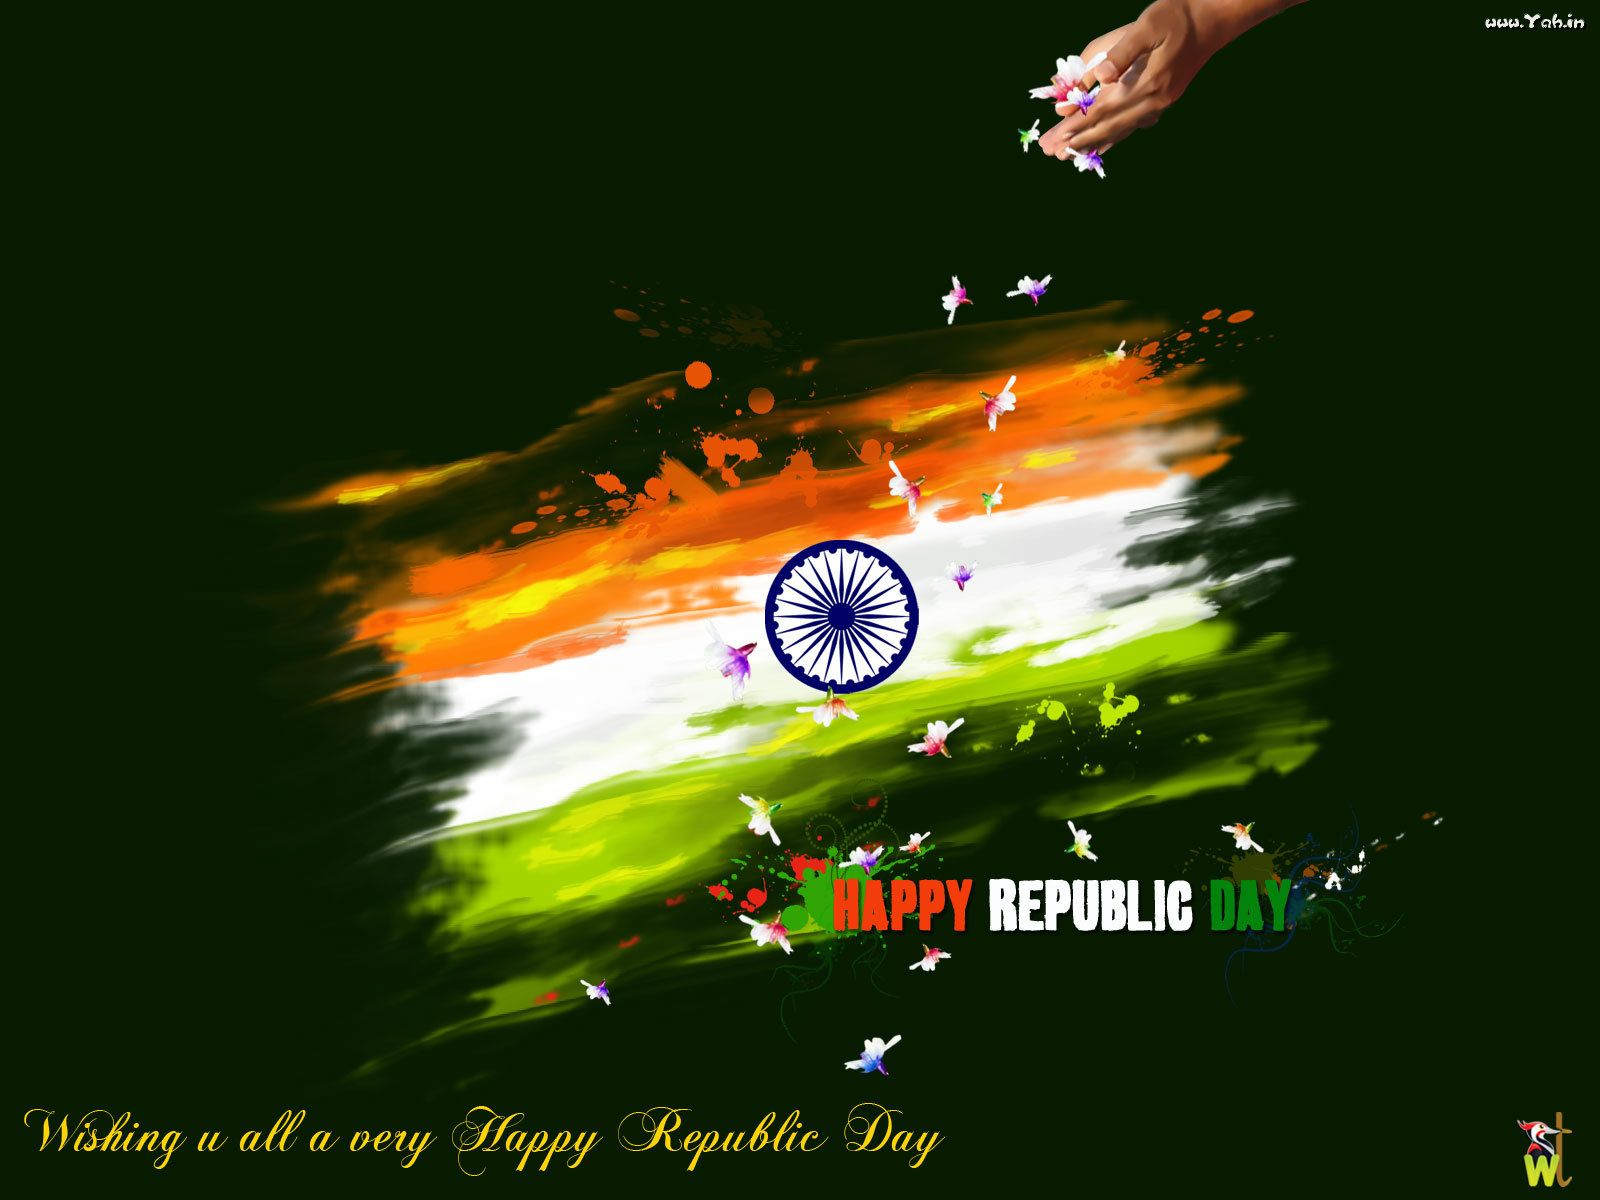 Occasions female turkey pinterest indian flag wallpaper and uitv wishes all indians in india and abroad happy republic day 2013 united indians television uitv is a global internet television network voltagebd Choice Image